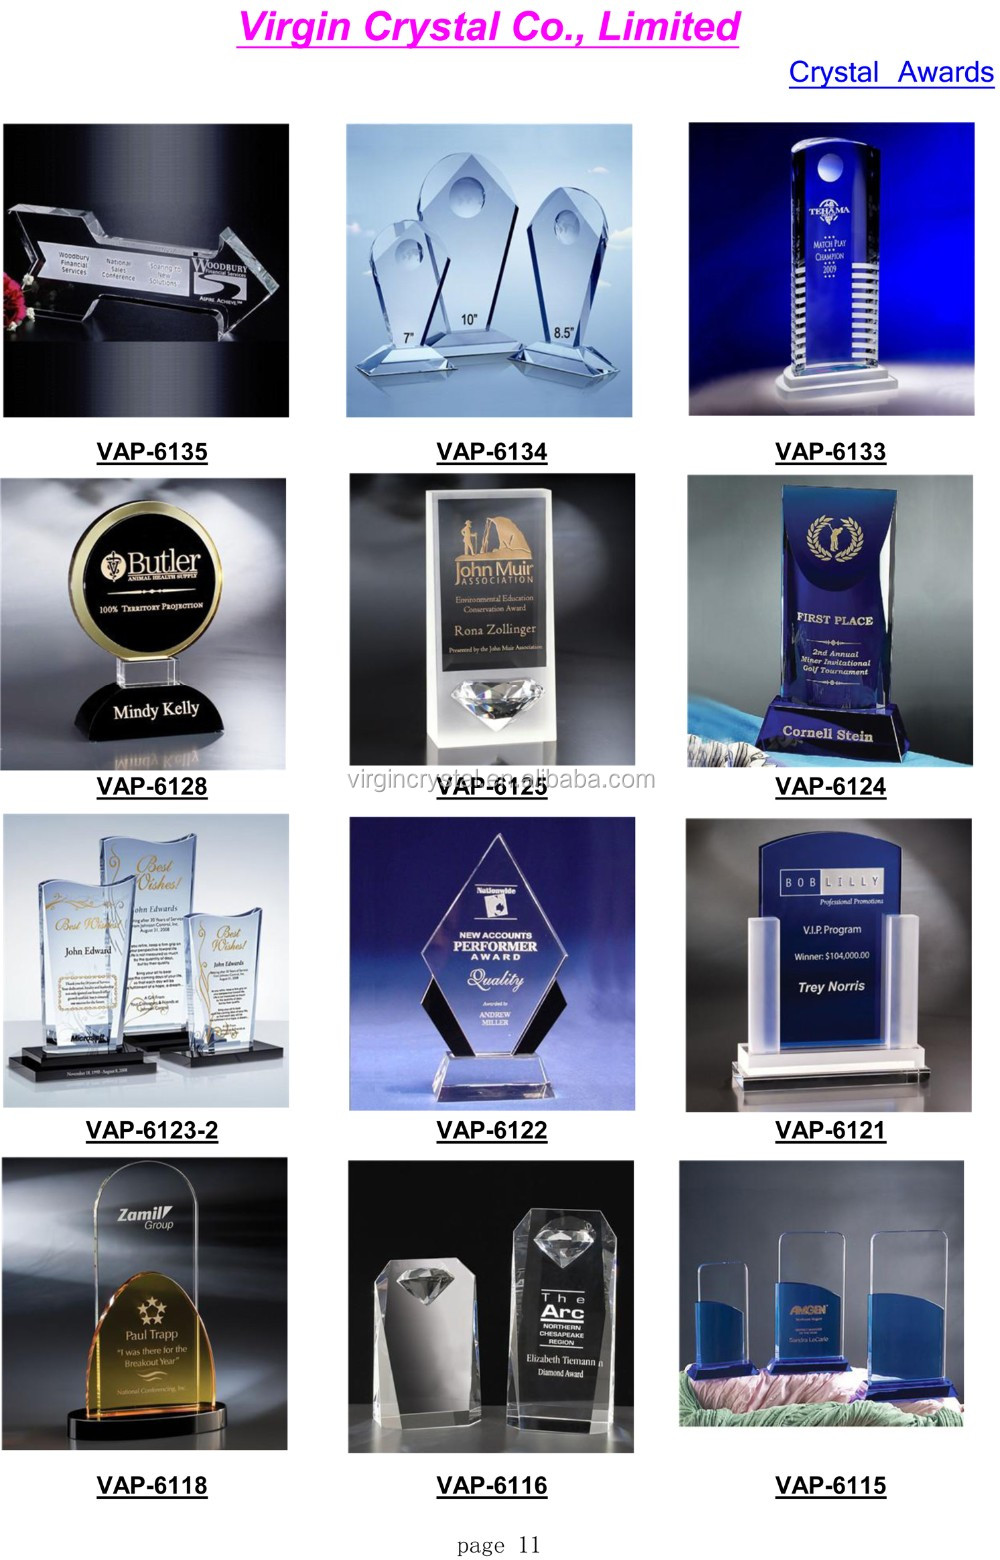 2016 Crystal Awards Catalog-11.jpg